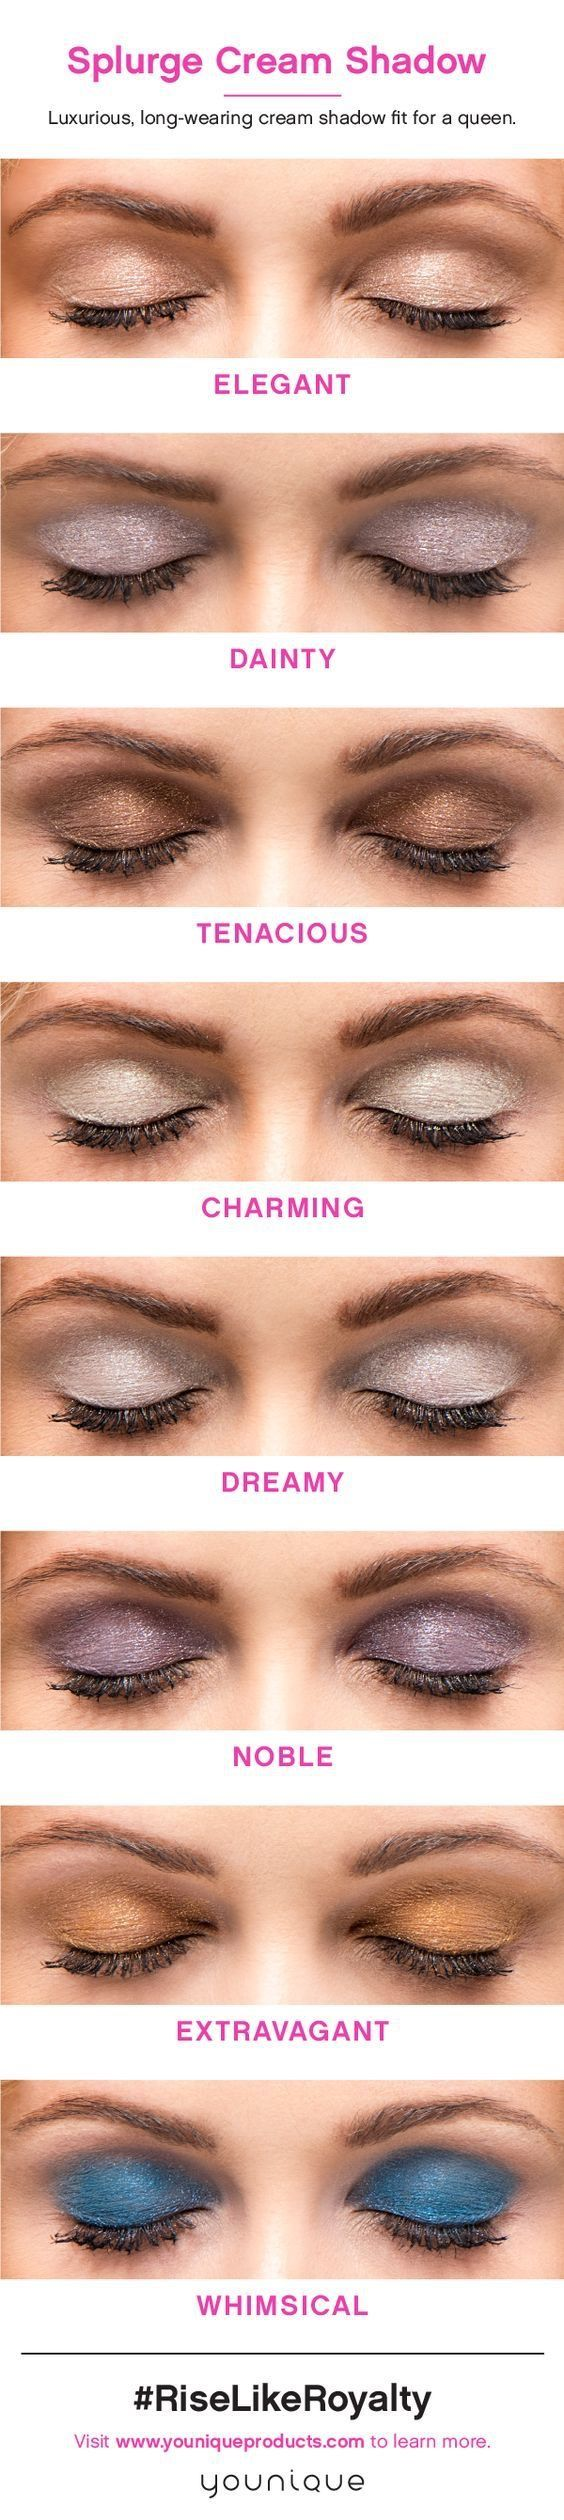 Youniques Splurge Creme & they different shades! Get your match & make those eyes POP!